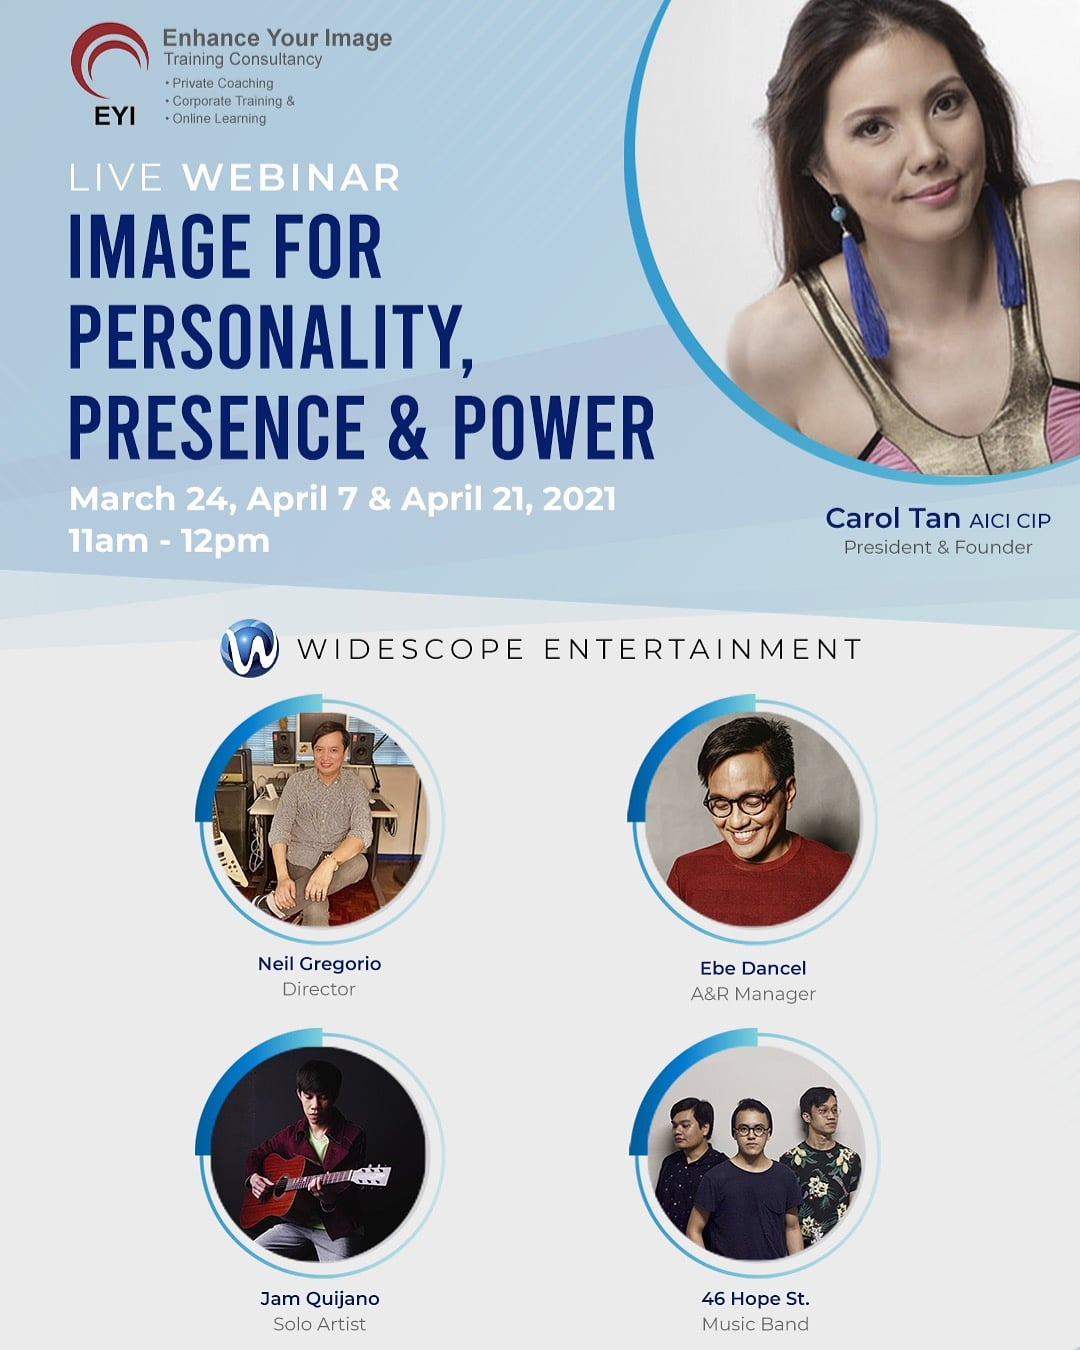 IMAGE FOR PERSONALITY, PRESENCE & POWER